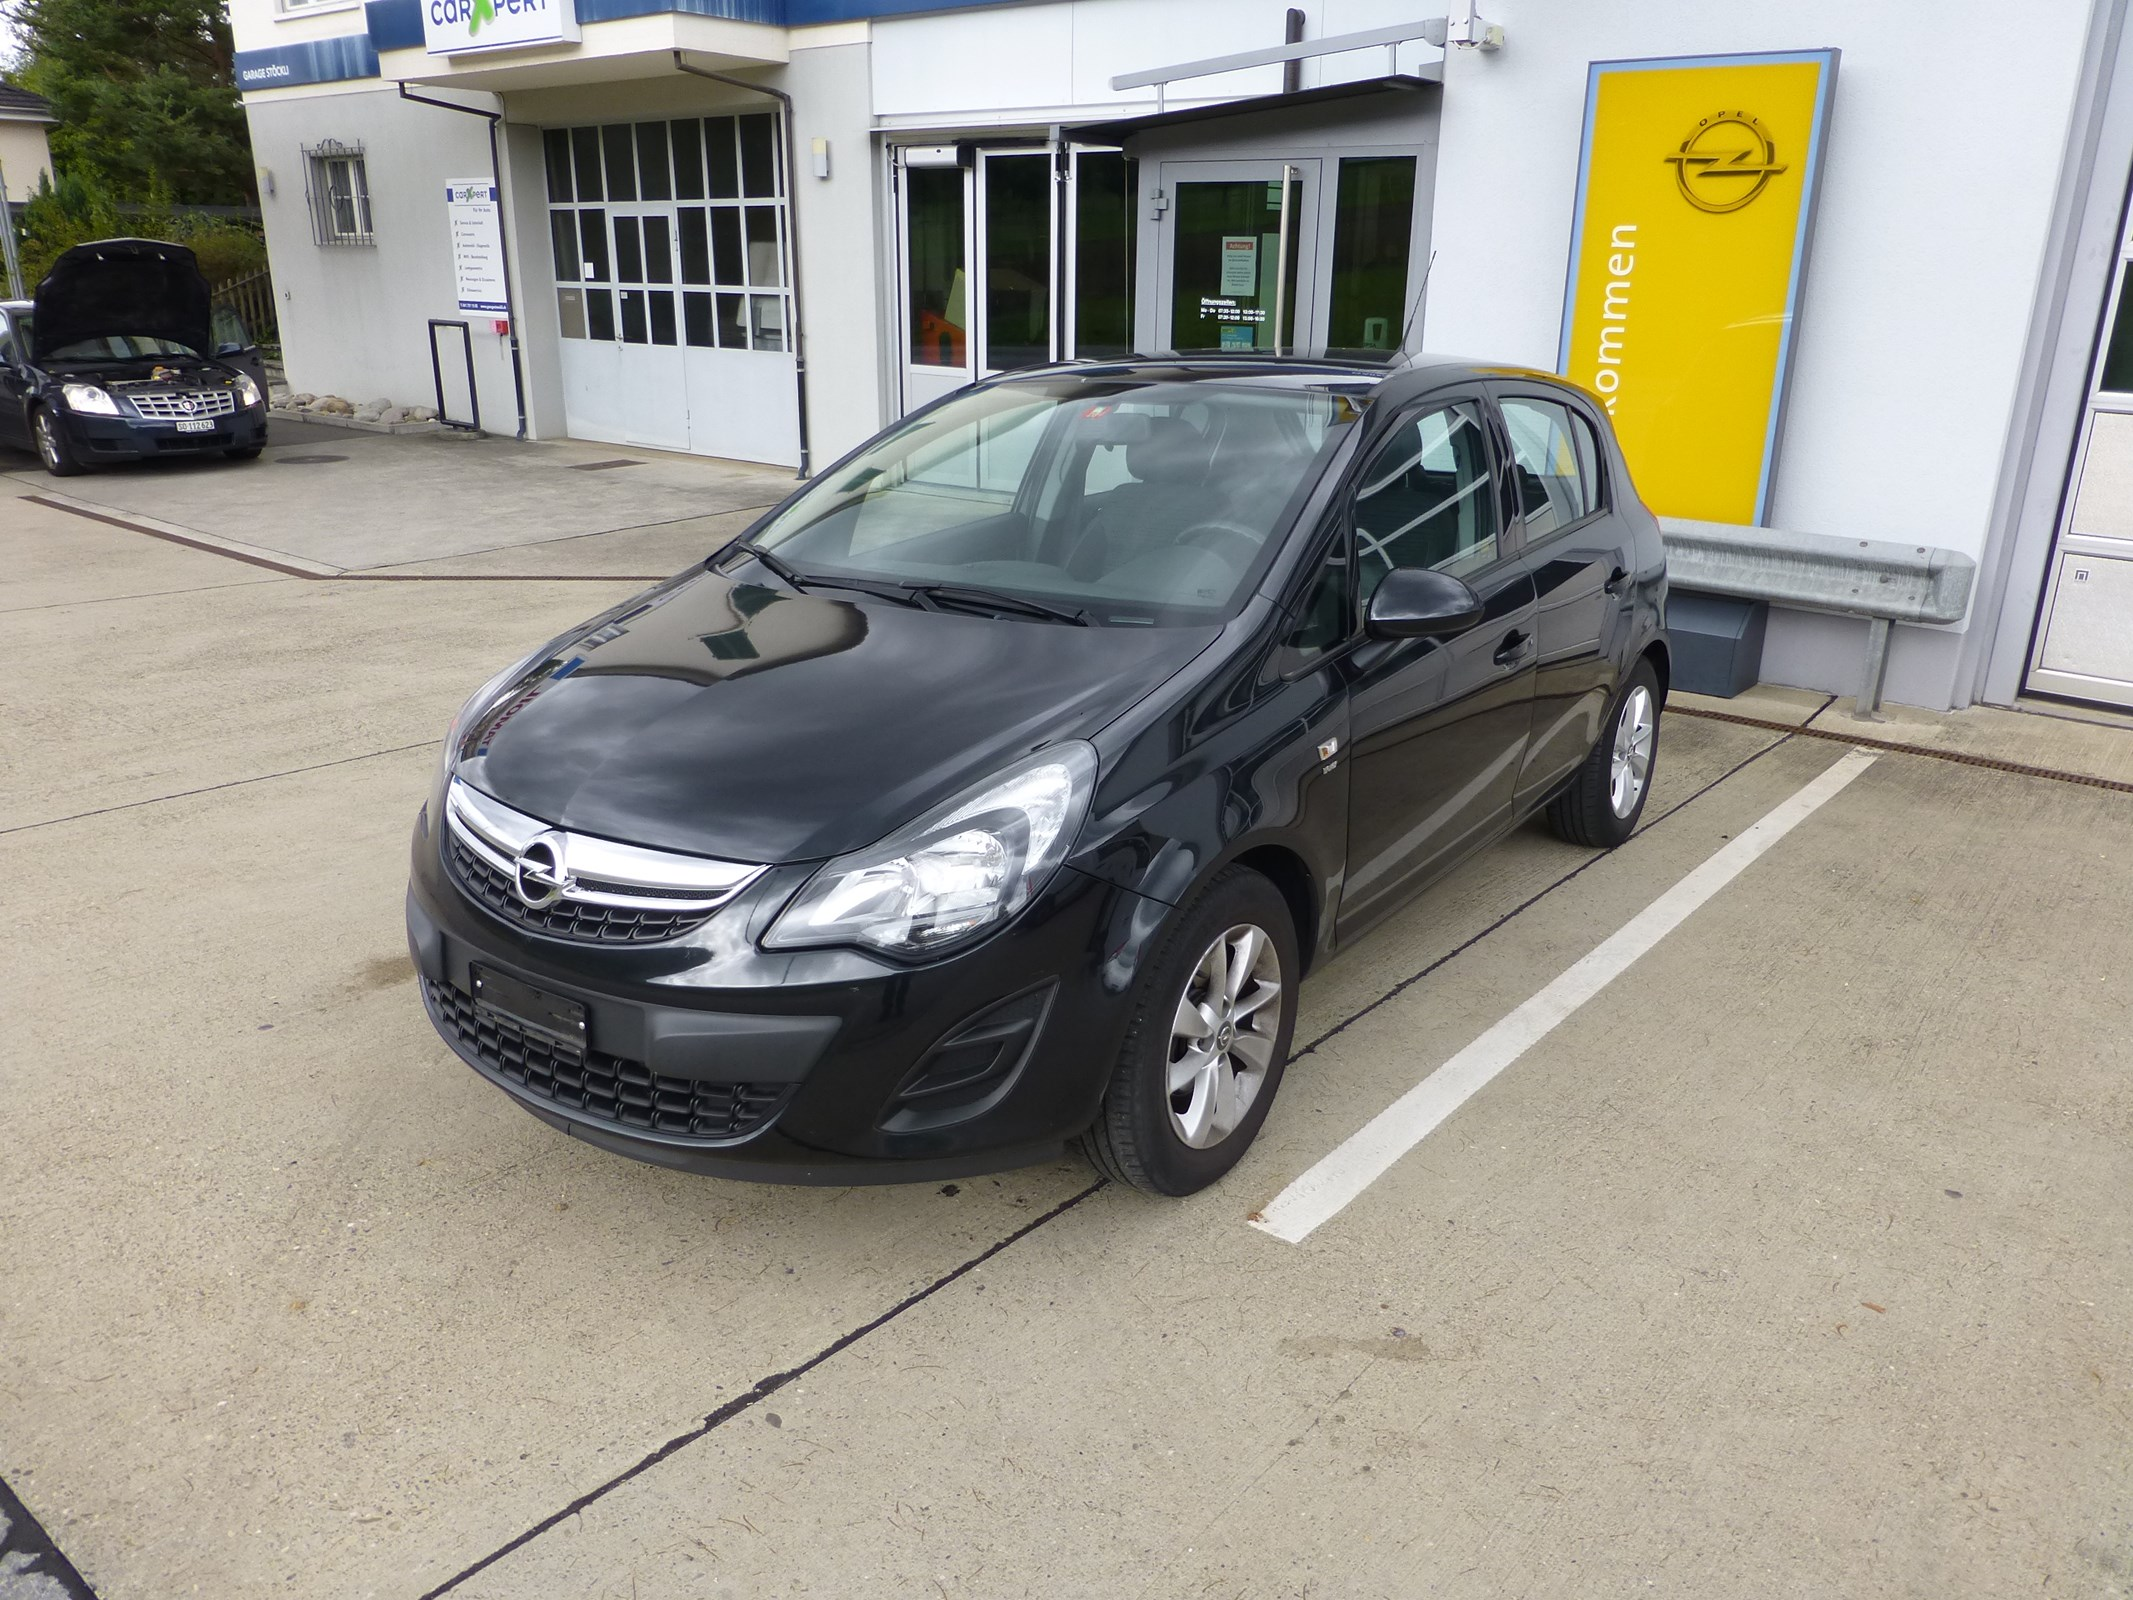 saloon Opel Corsa 1.4 TP Final Edition